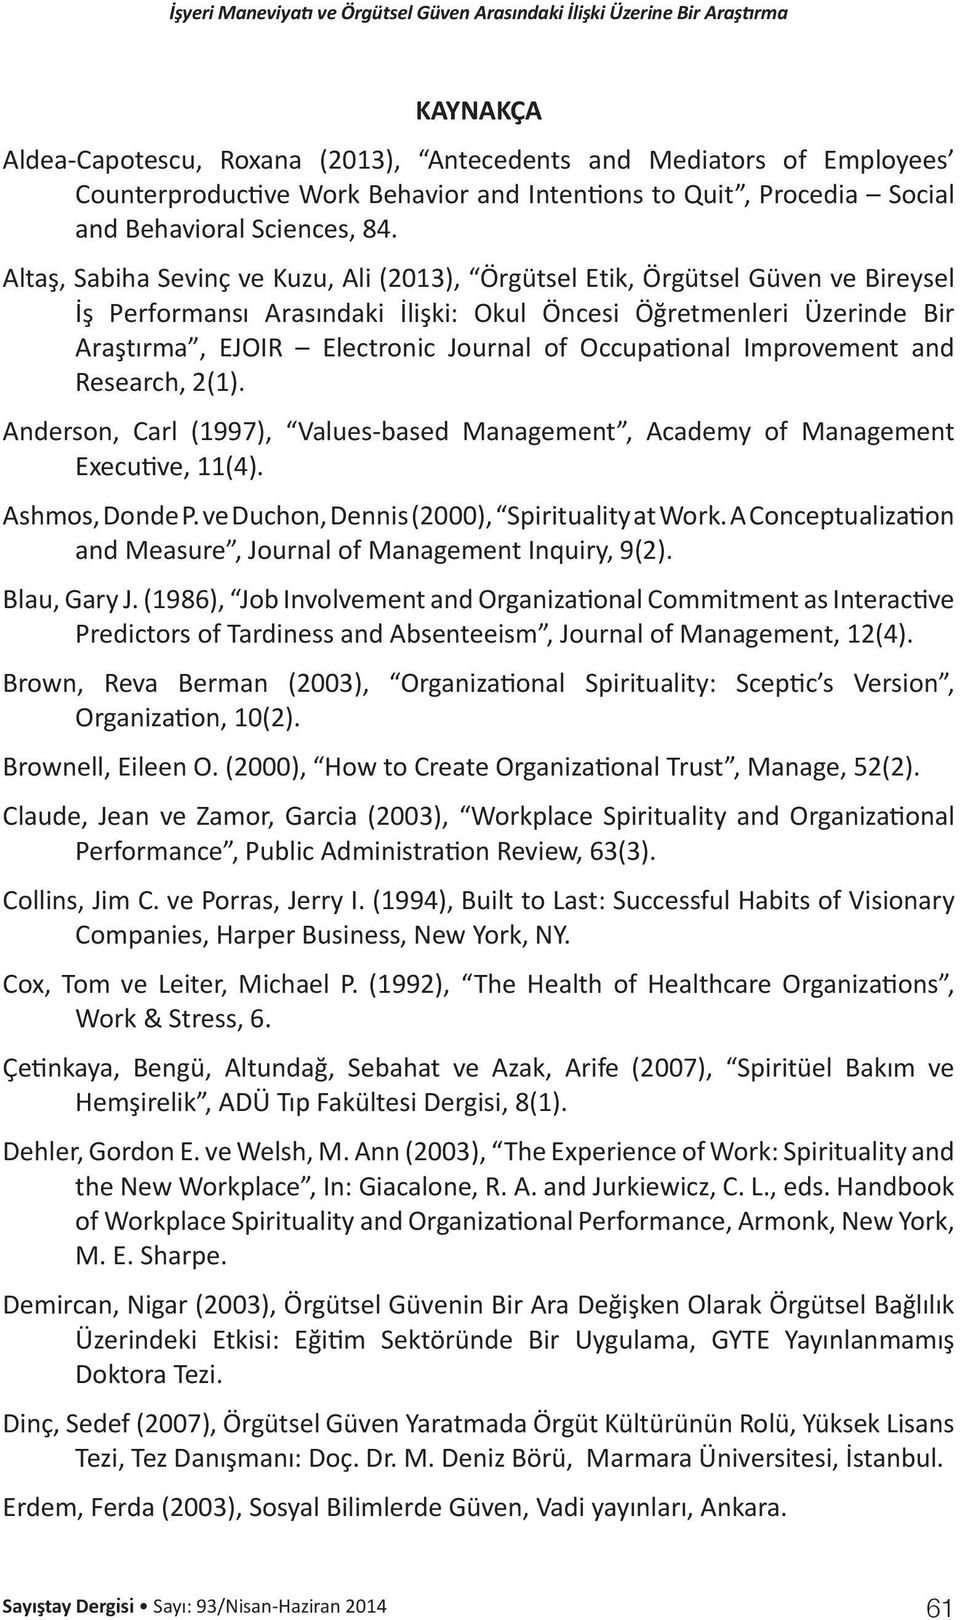 Occupational Improvement and Research, 2(1). Anderson, Carl (1997), Values-based Management, Academy of Management Executive, 11(4). Ashmos, Donde P. ve Duchon, Dennis (2000), Spirituality at Work.